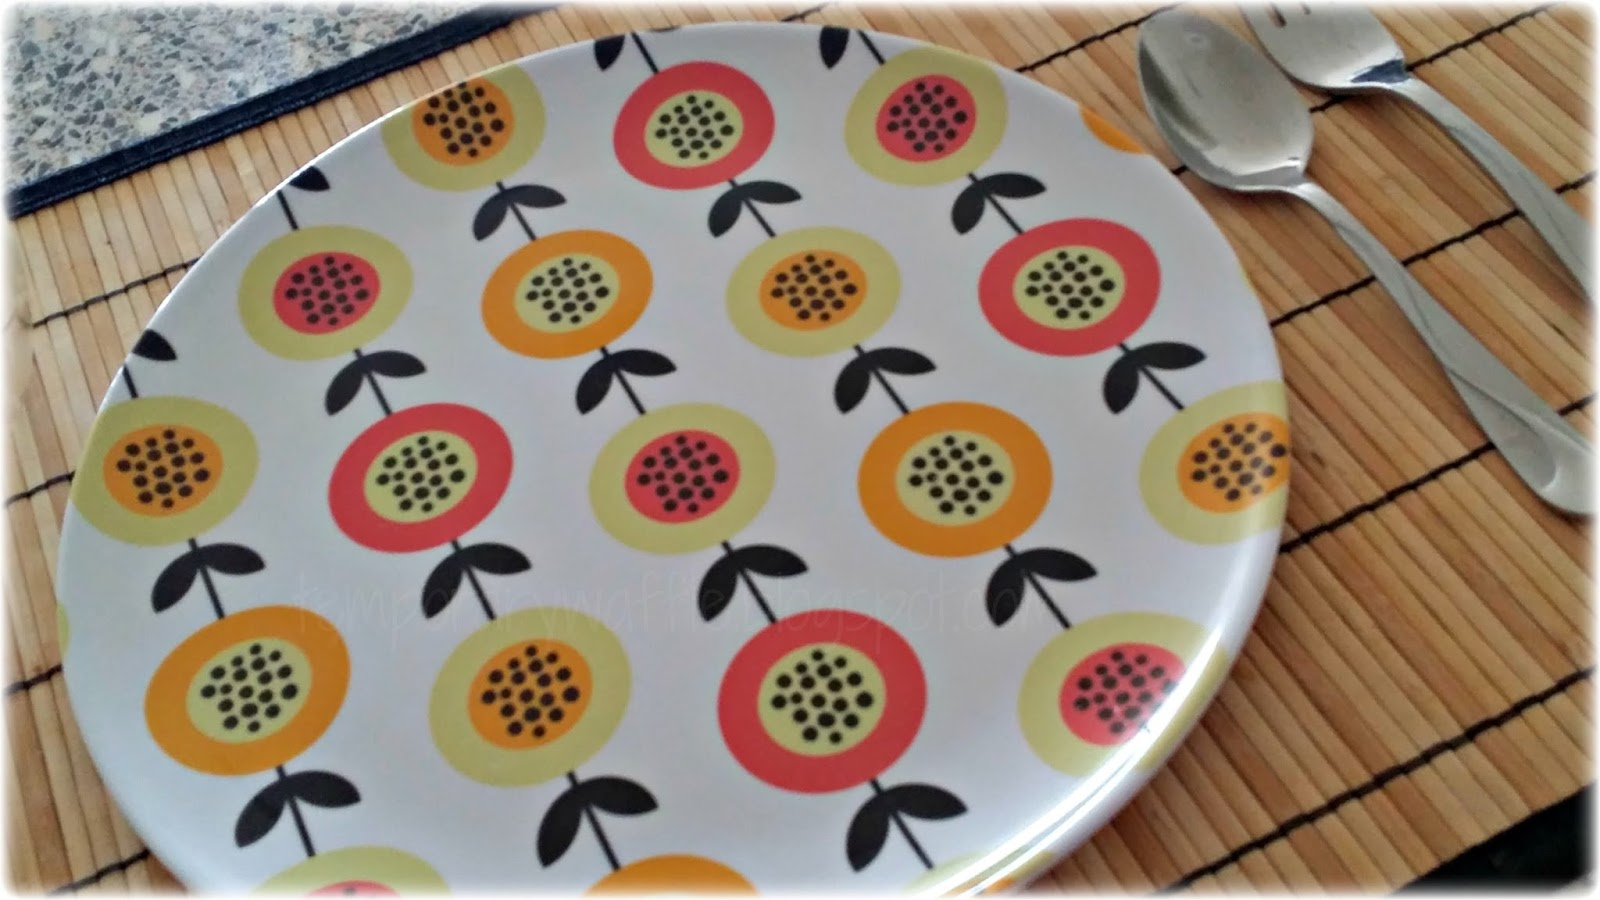 Tuesday June 9 2015 & Temporary Waffle: The Papaya Collection Melamine Picnic Dinner Plates